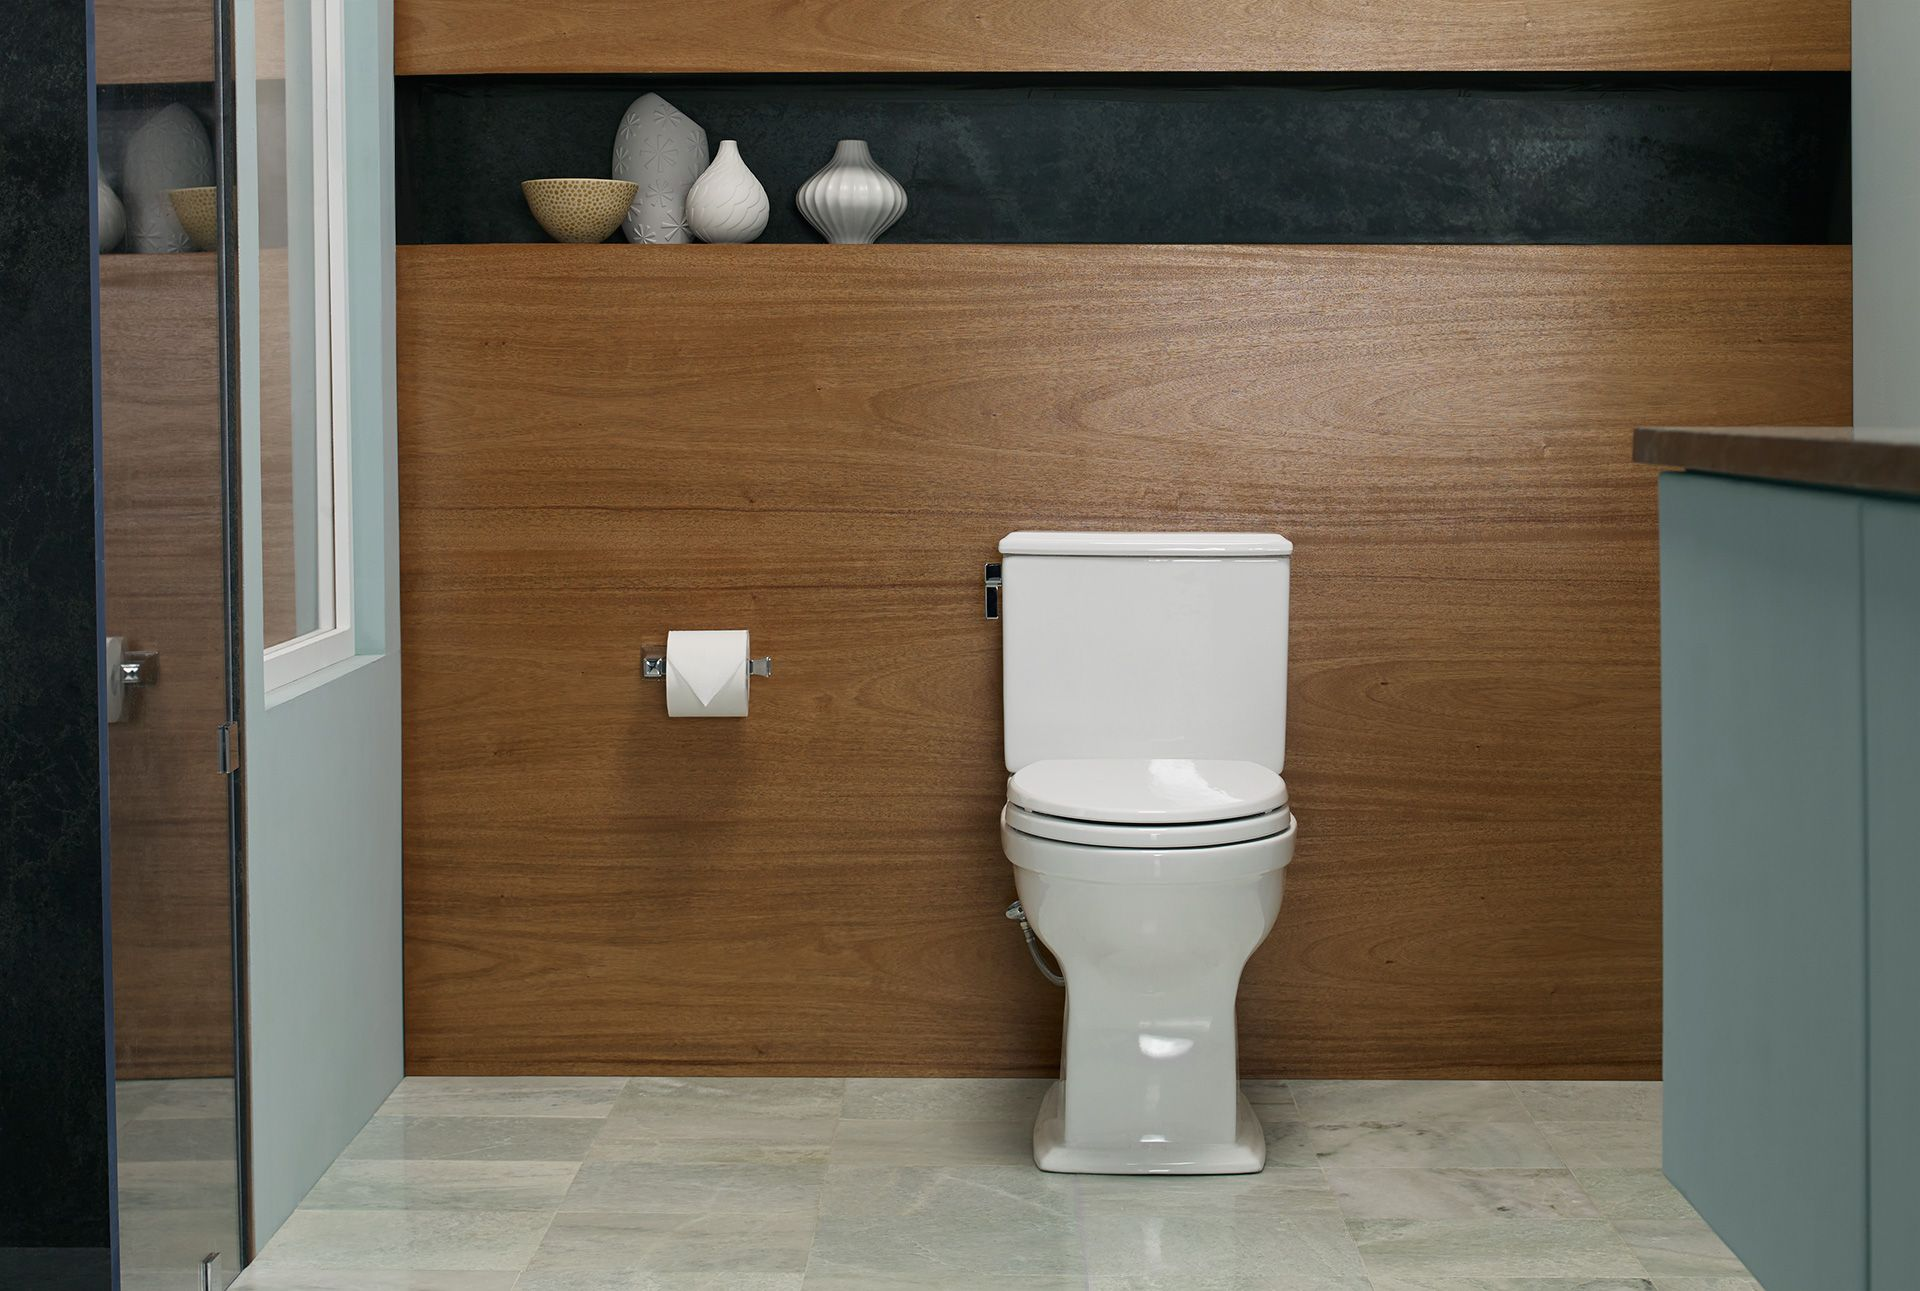 Connelly Two Piece Toilet 1 28 GPF & 0 9 GPF Elongated Bowl